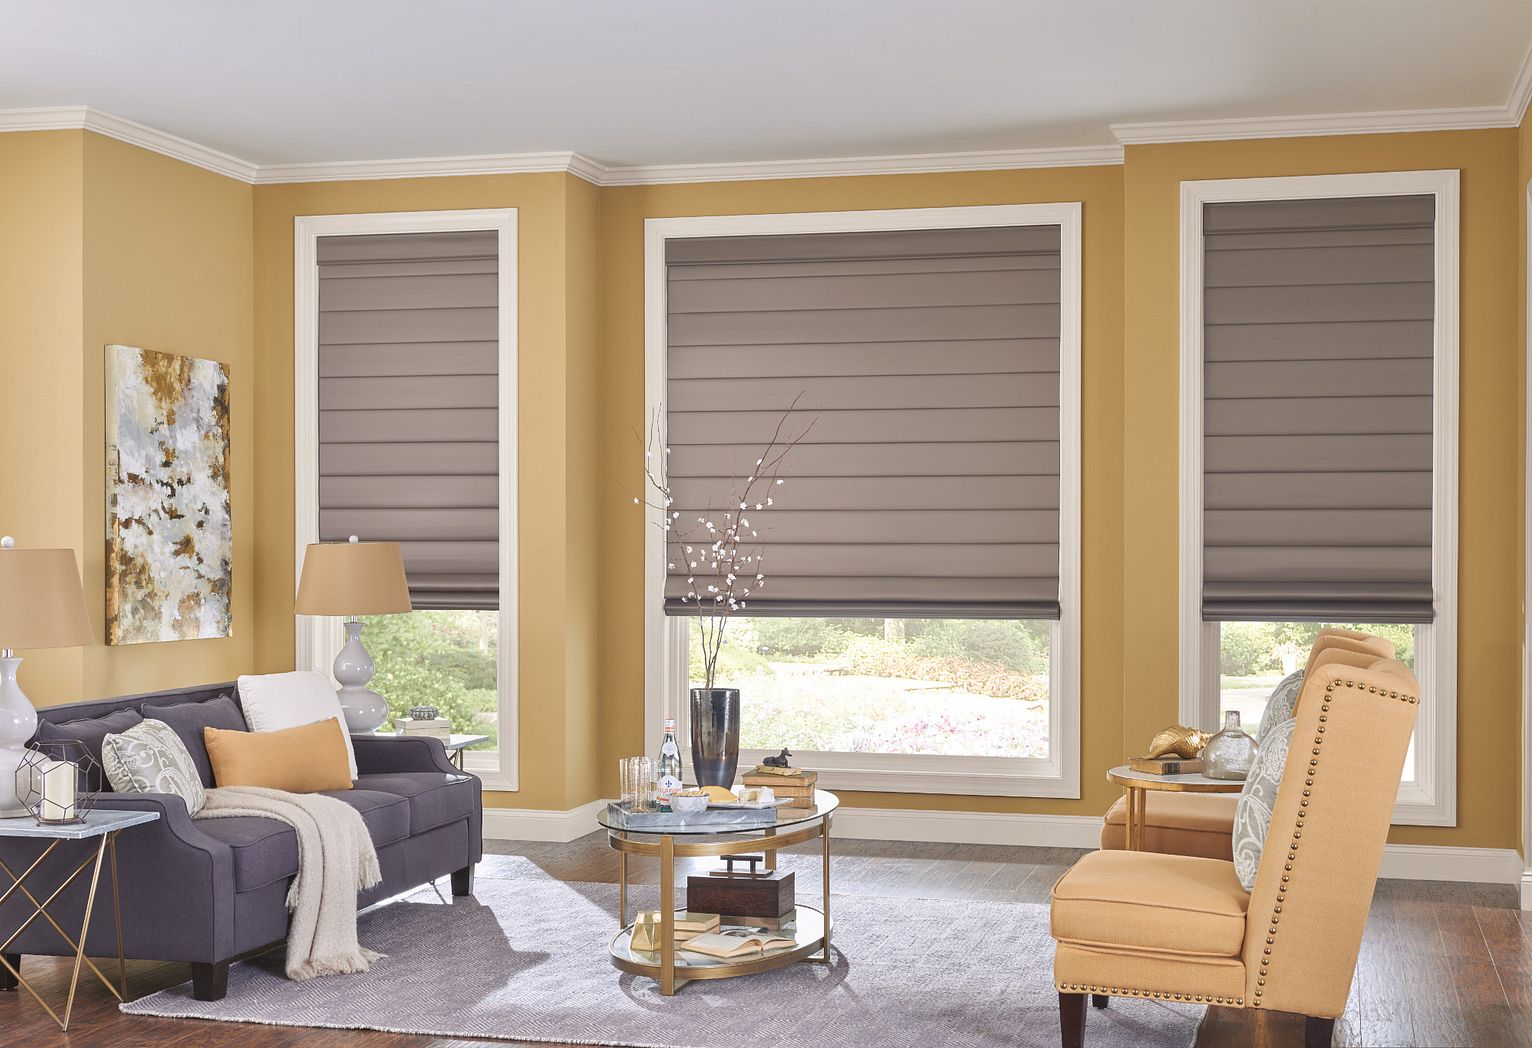 Classic Roman Shades in Flat Style with Cordless Lift: Satin, Pewter 3237